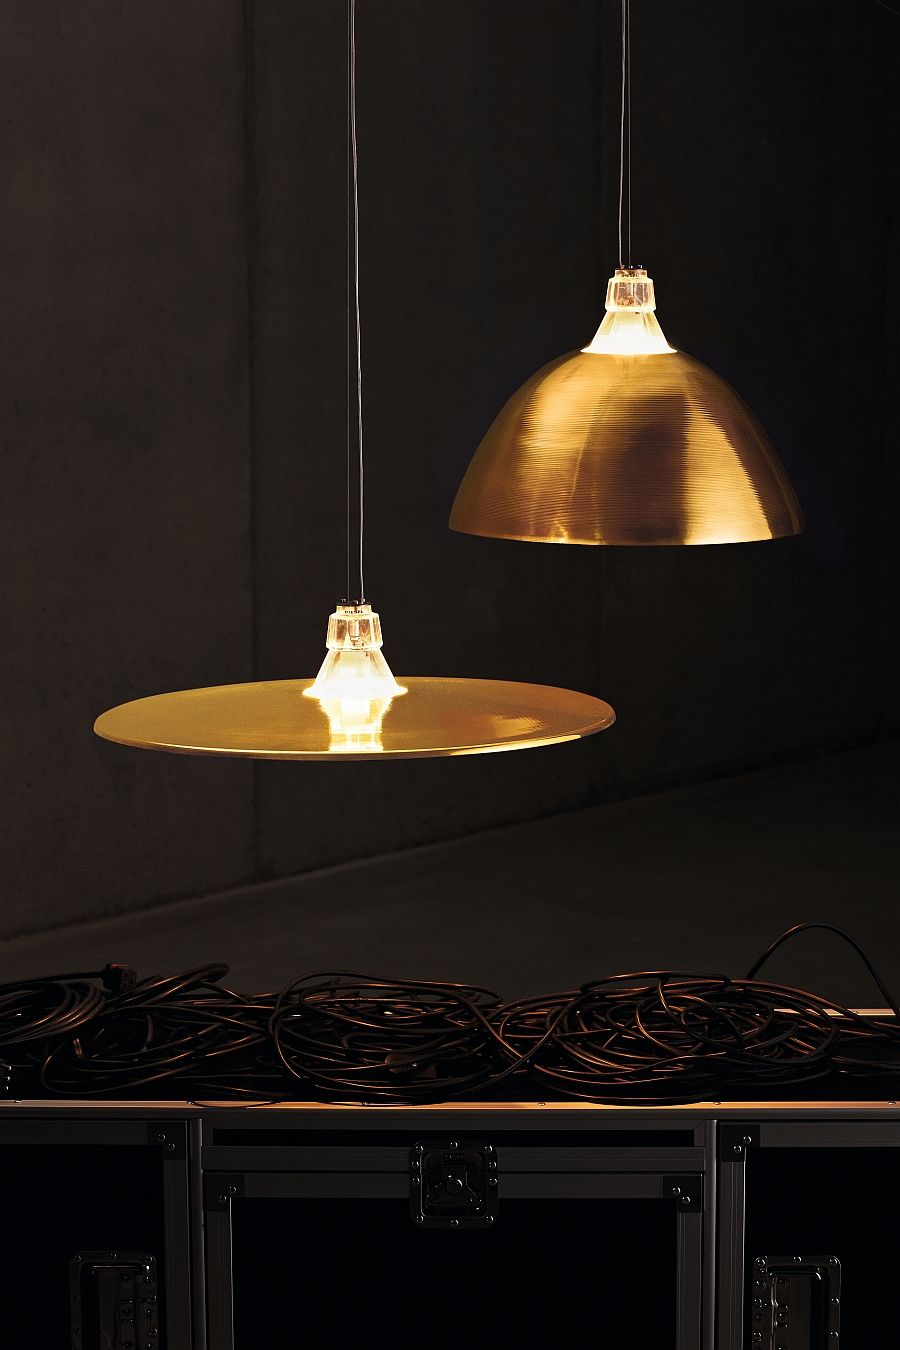 Designer lamps: the original lamp from the company Foscarini